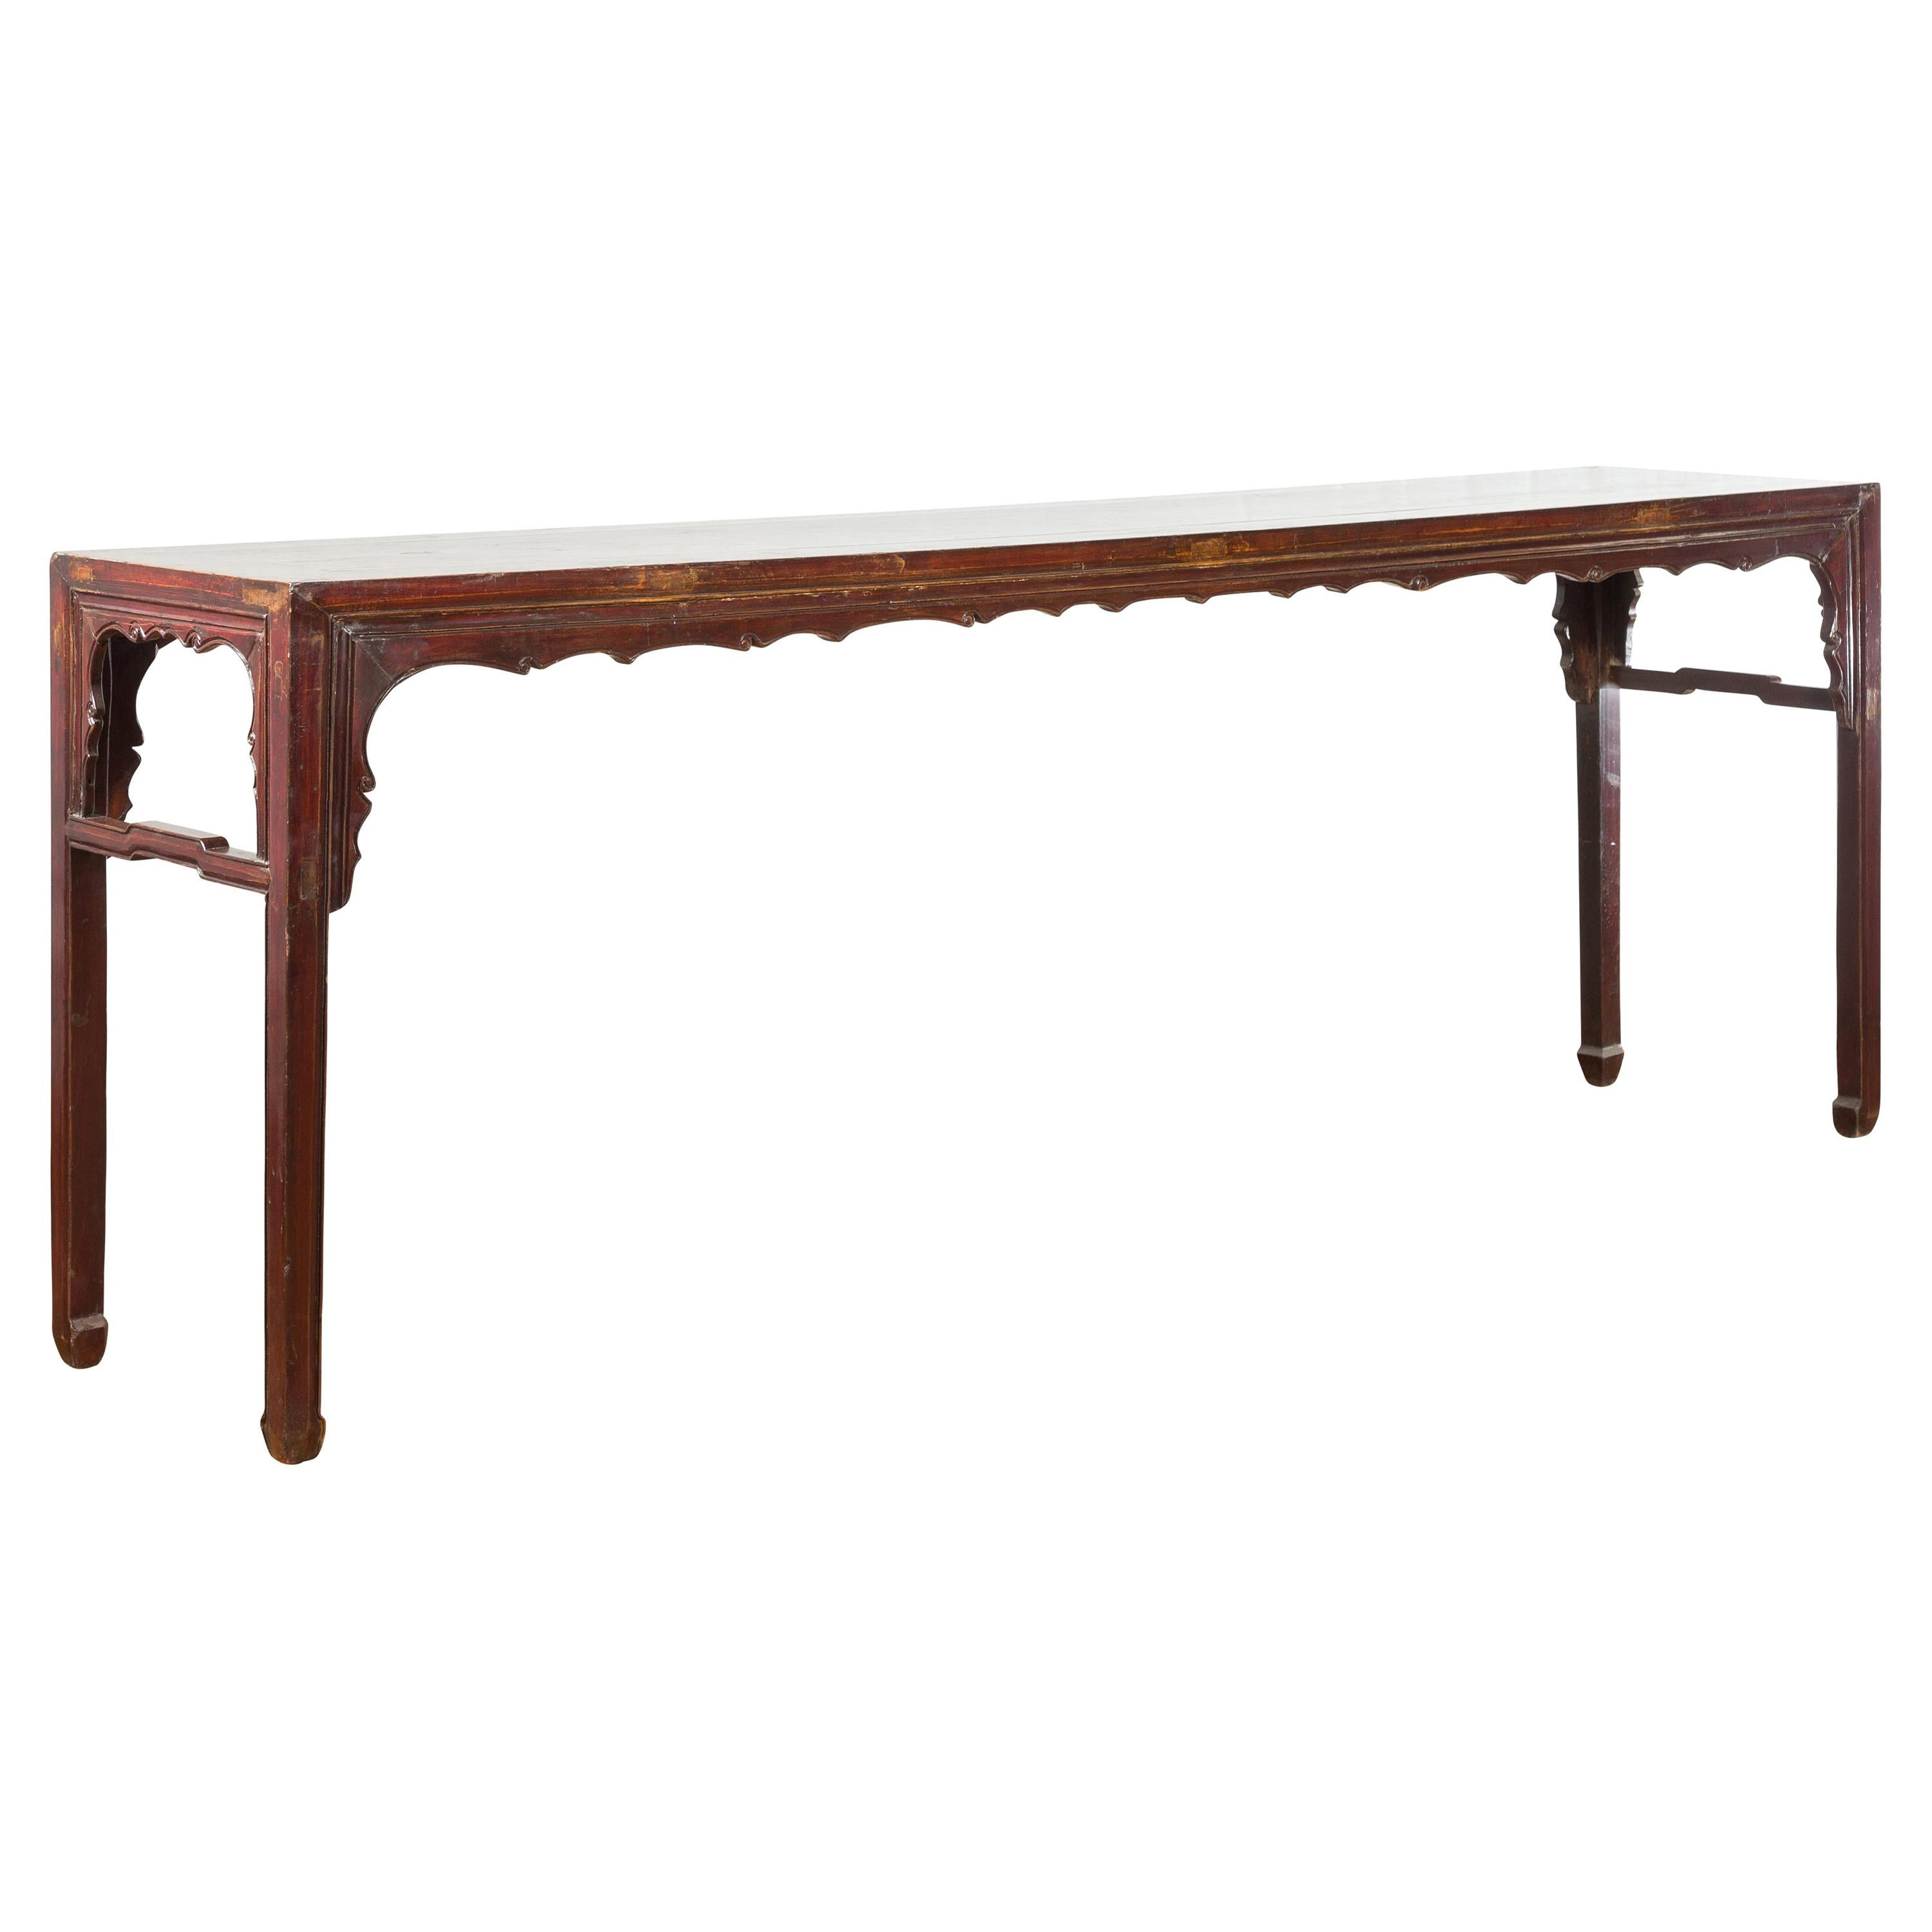 Chinese 19th Century Qing Dynasty Altar Console Table with Reddish Brown Patina